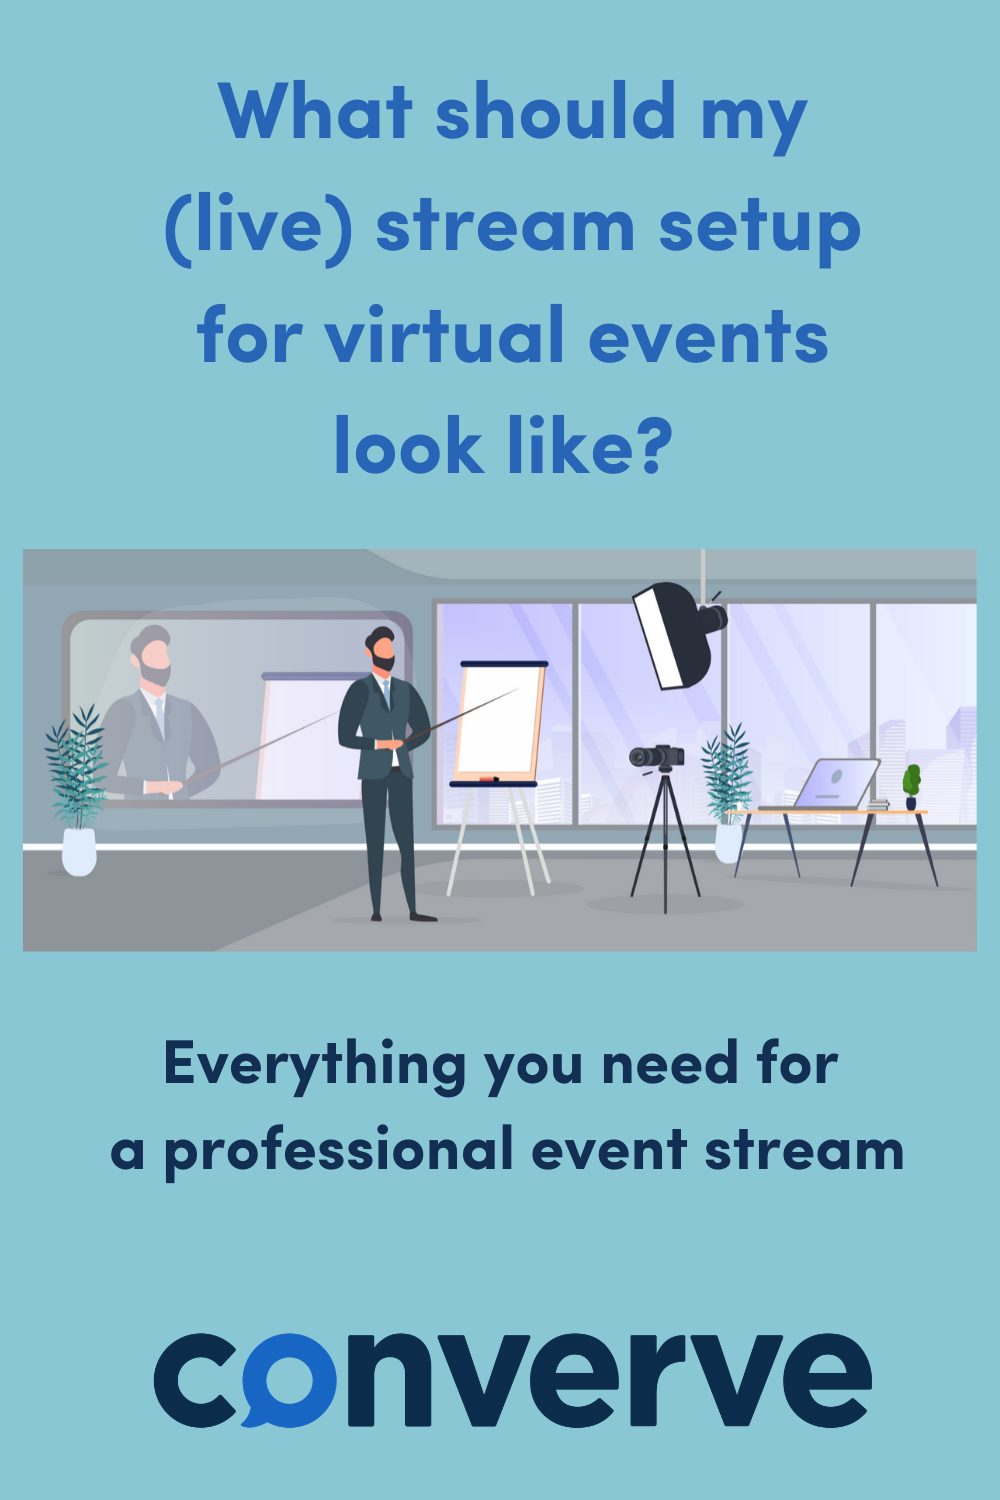 What should my (live) stream setup for virtual events look